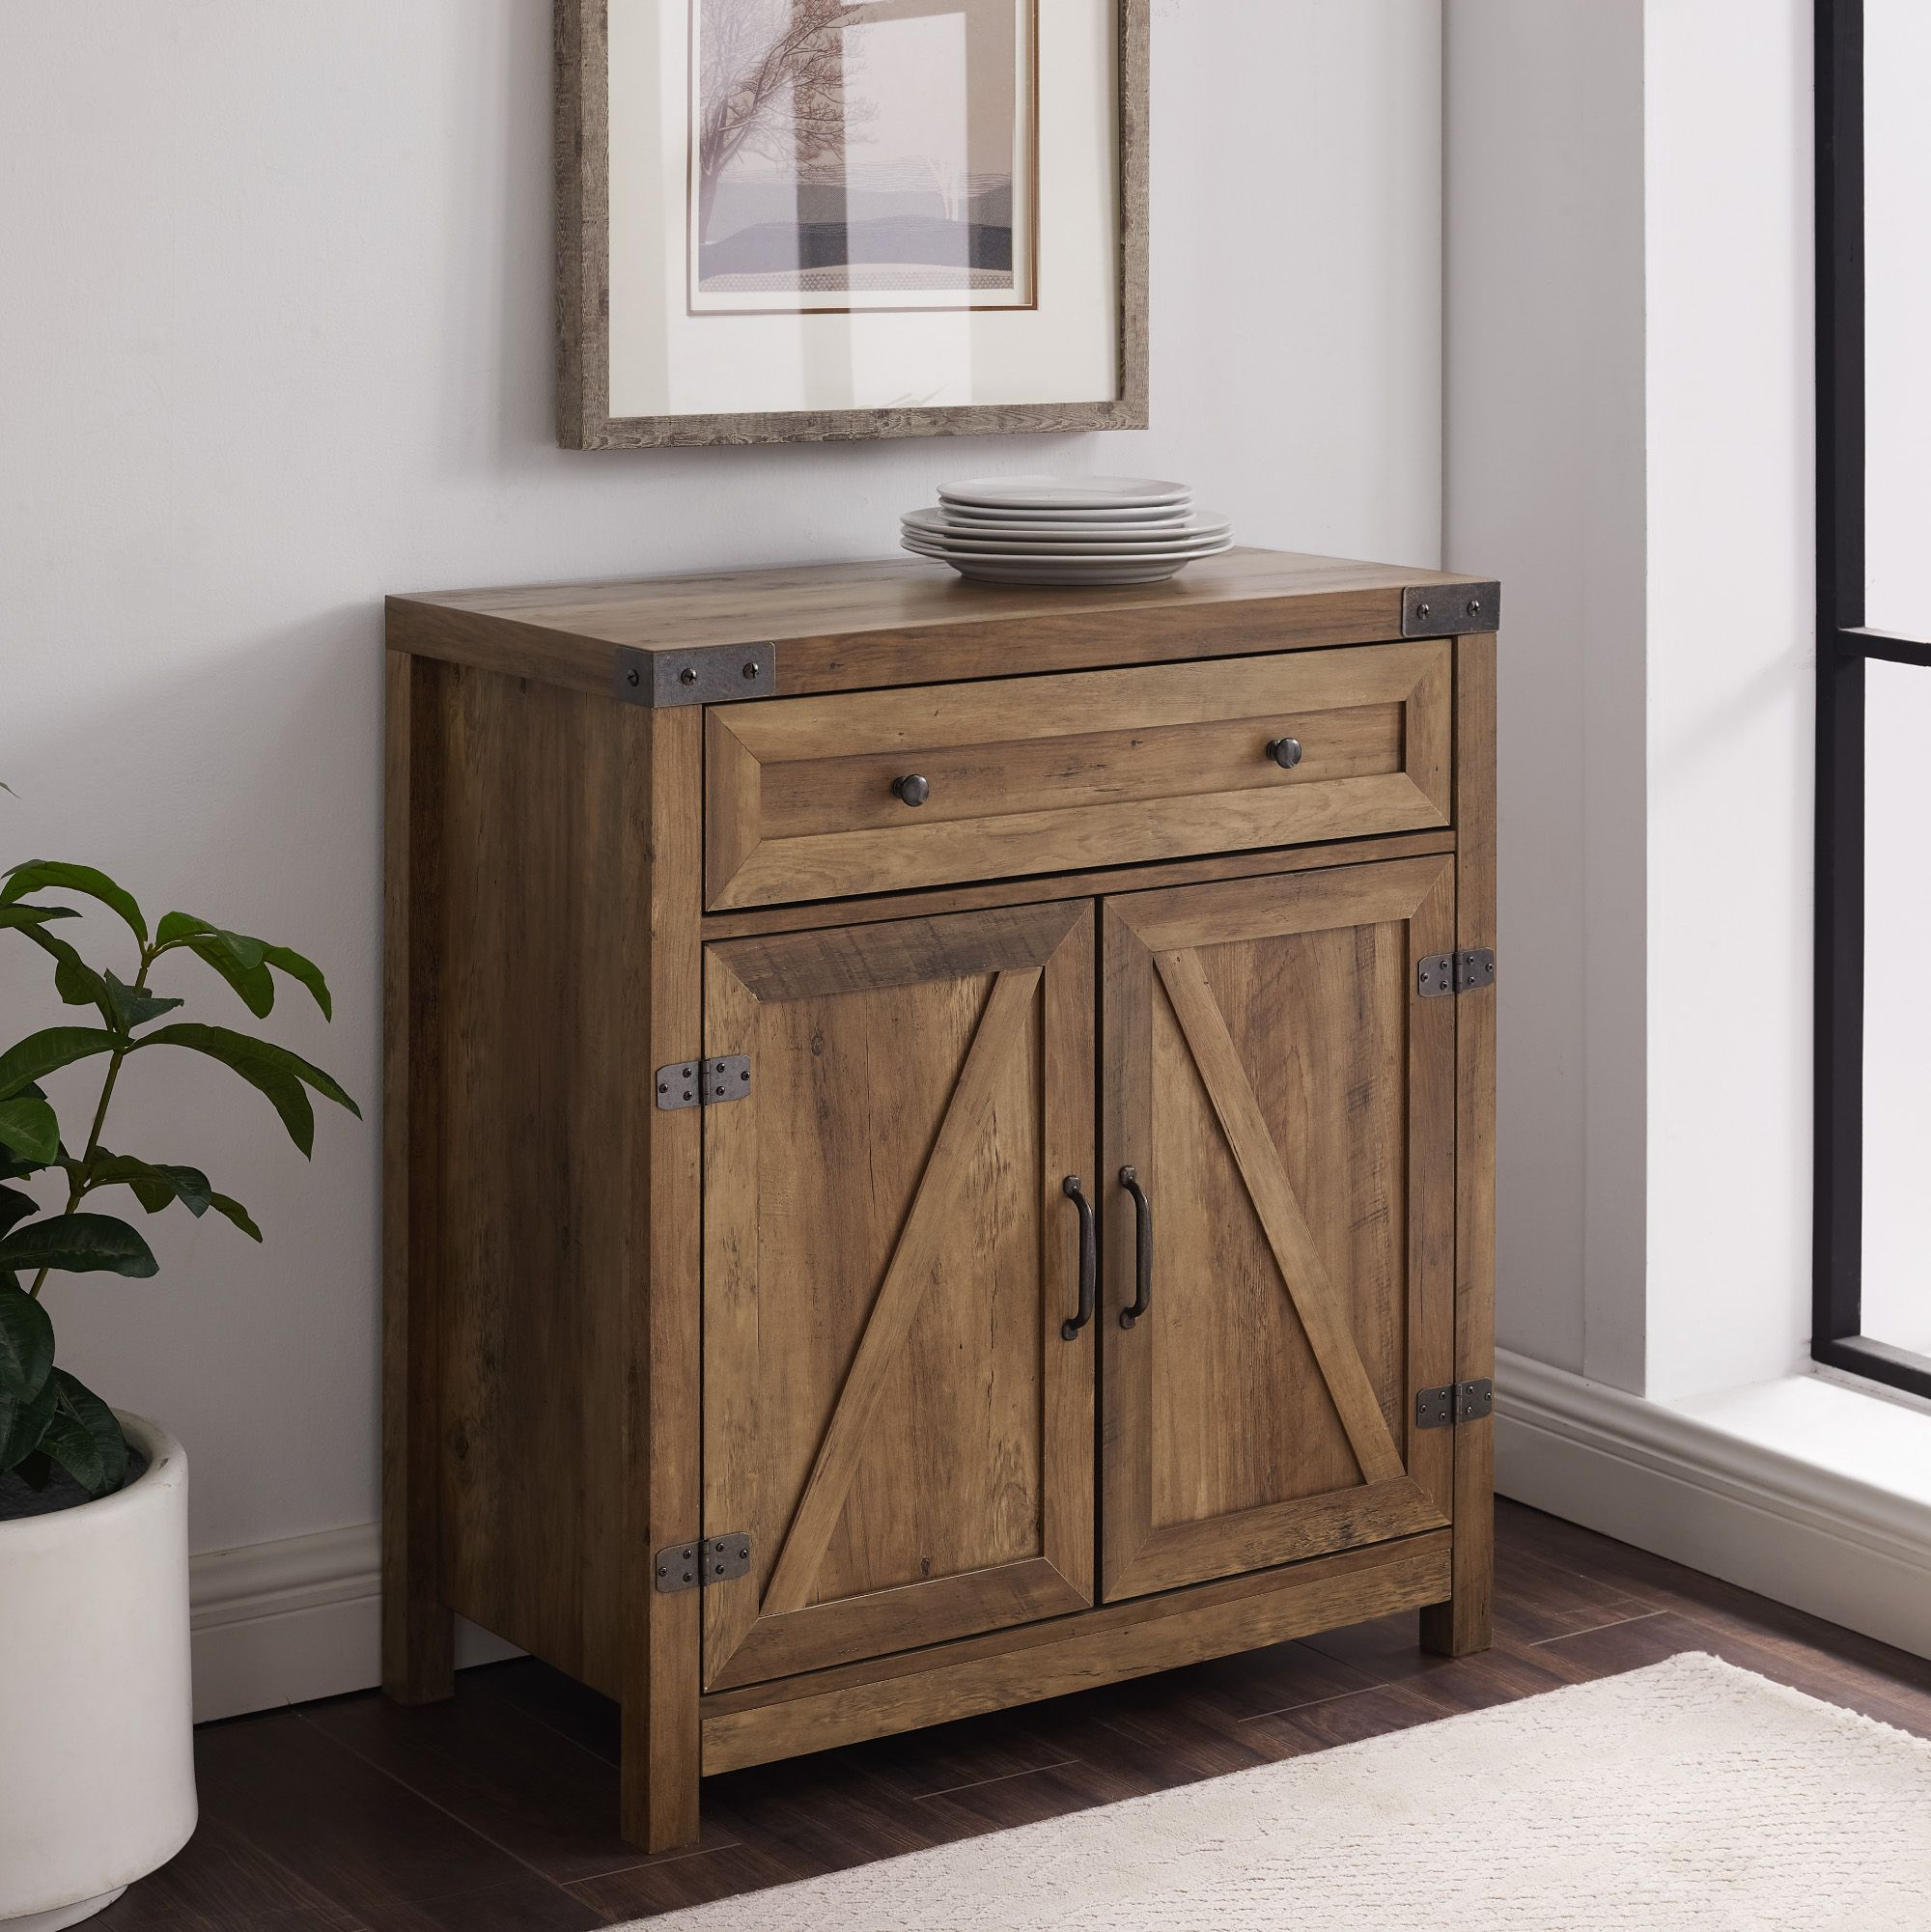 Woven Paths Farmhouse Barn Door Tv Stands In Multiple Finishes With Regard To Well Liked Manor Park Farmhouse Barn Door Accent Cabinet Reclaimed (View 10 of 10)